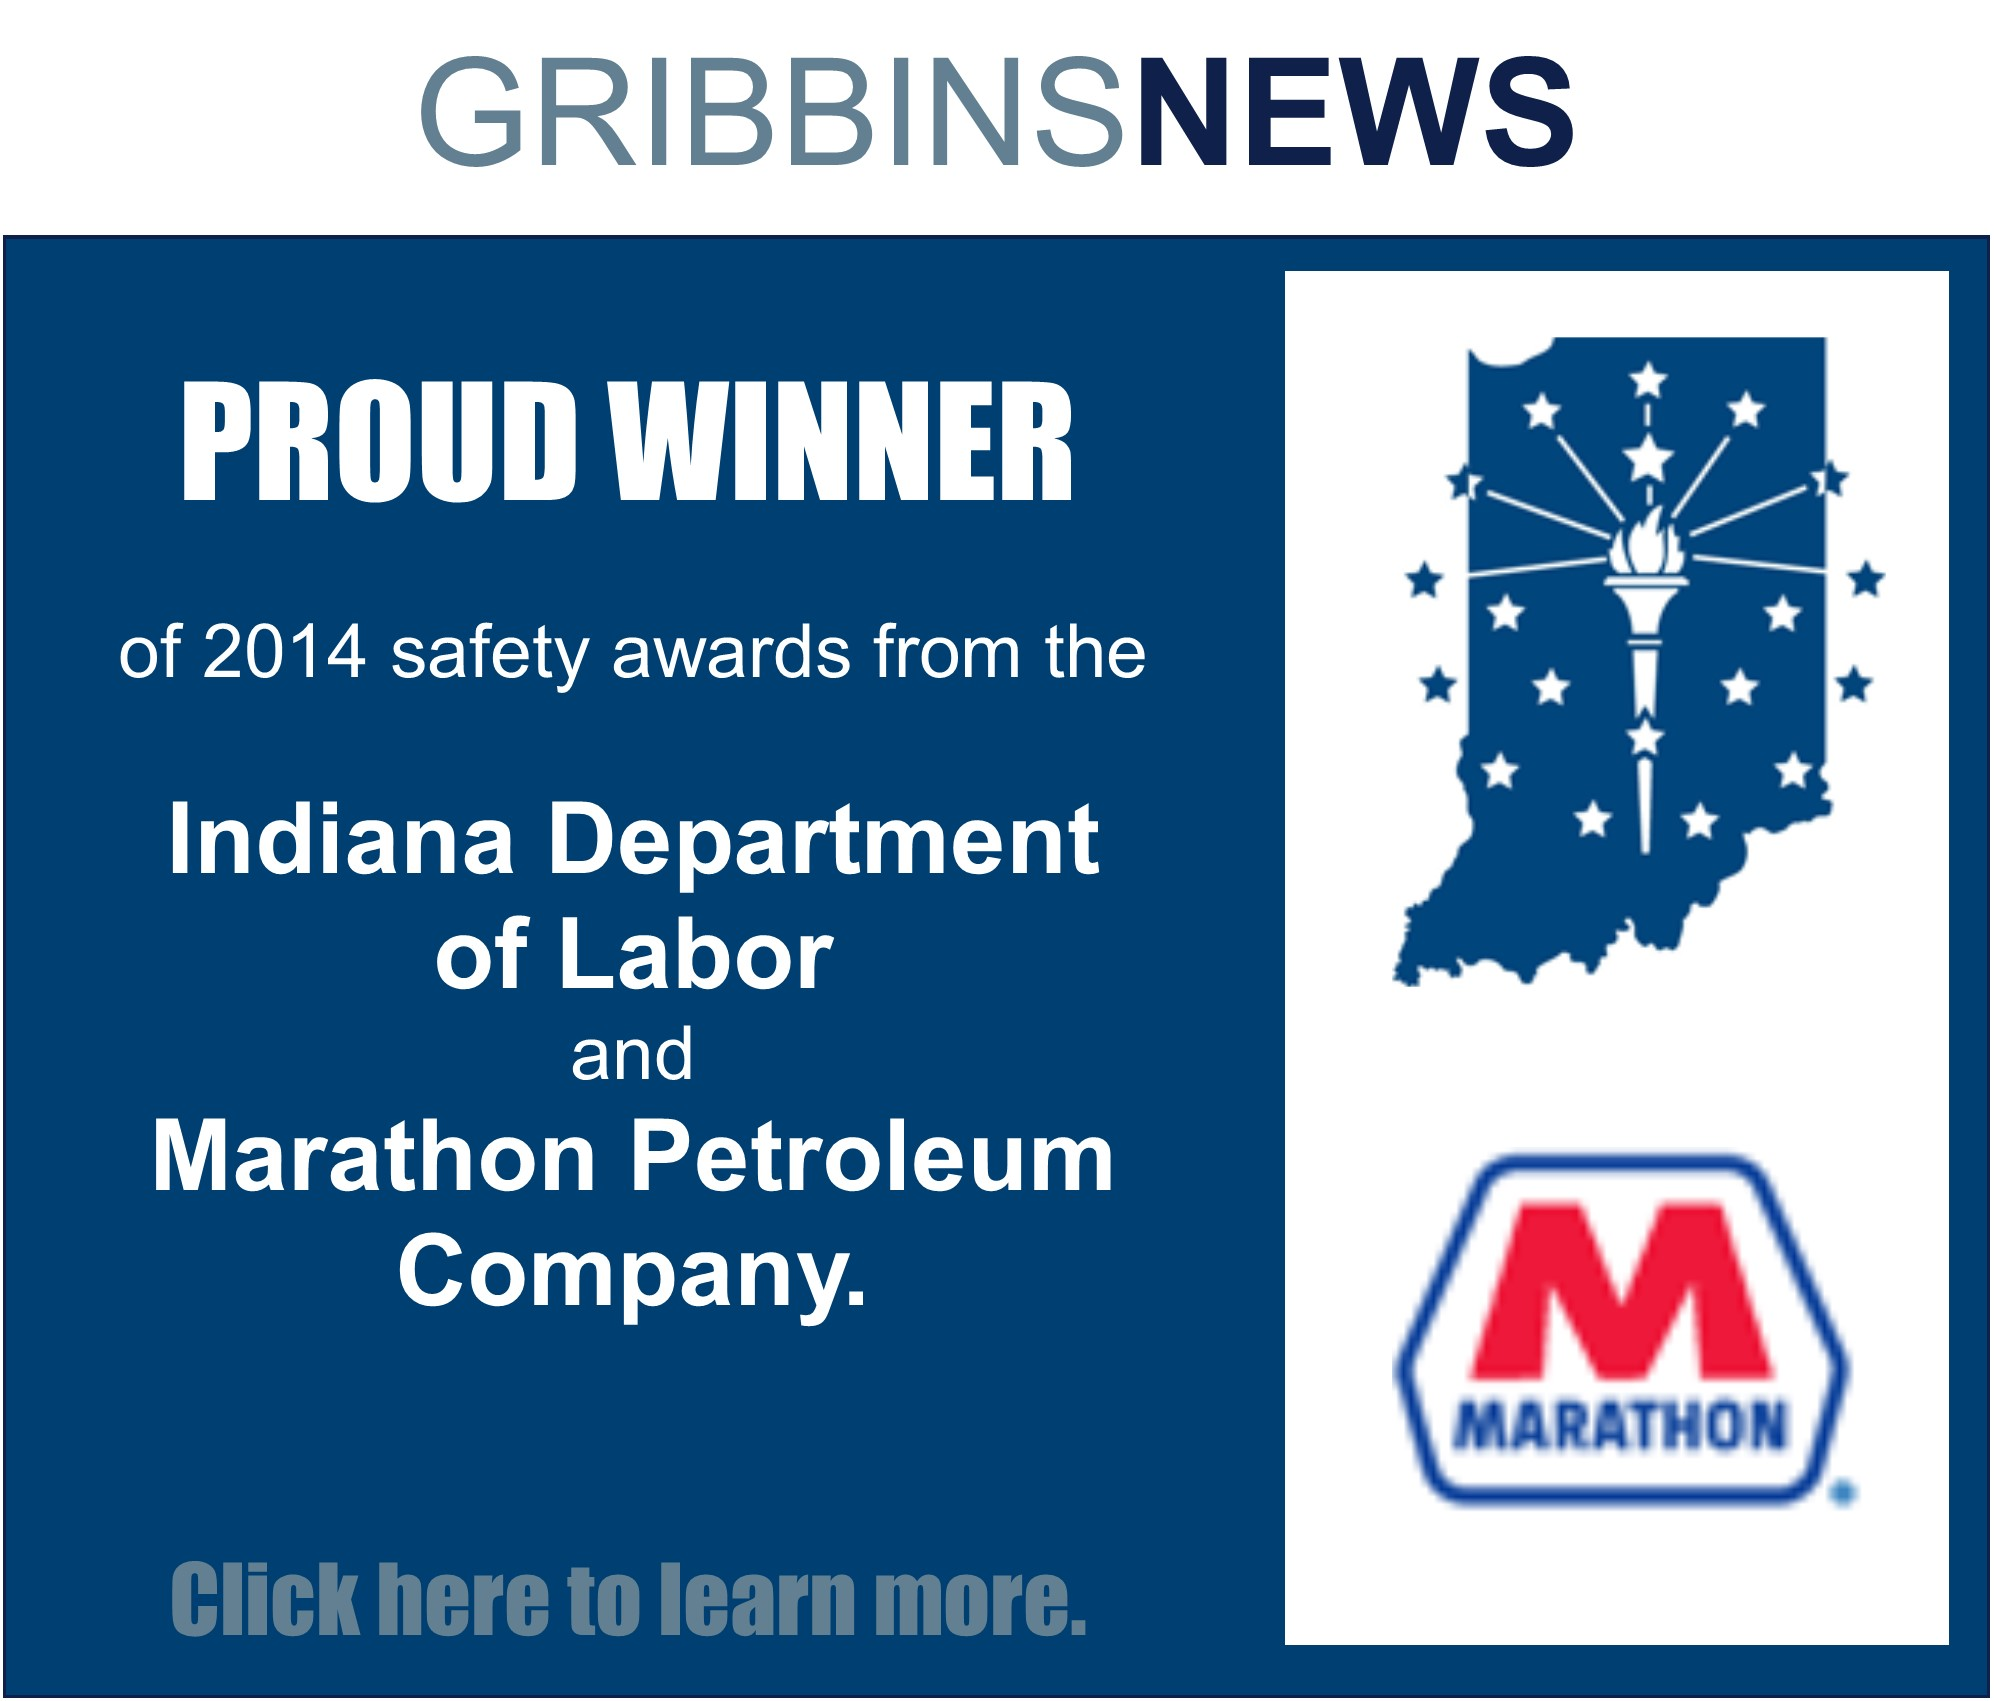 Two more safety awards!